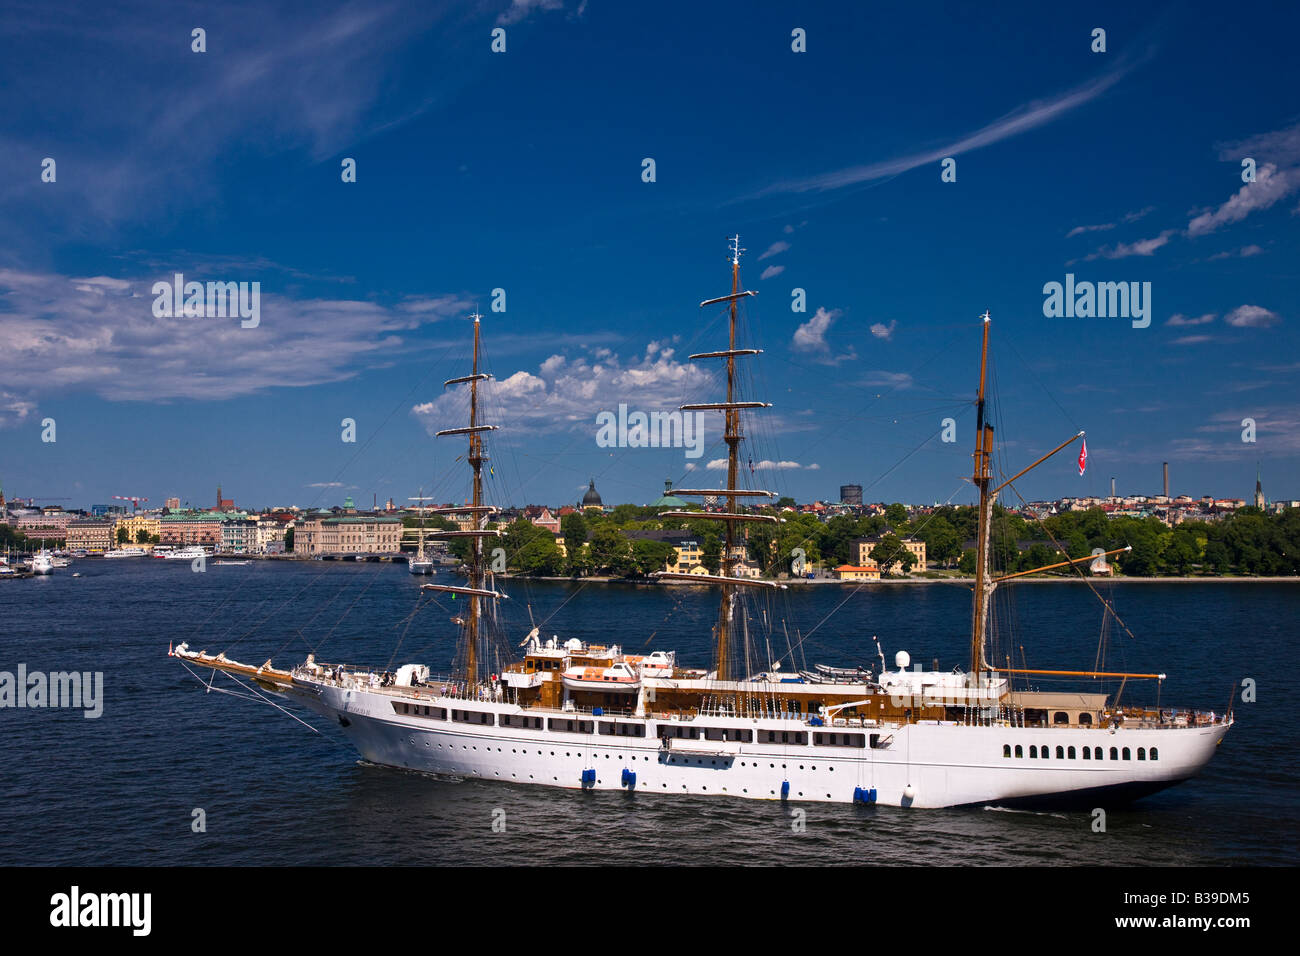 Tall sailing ship returning to Stockholm after tourist excursion on a sunny summer afternoon. - Stock Image